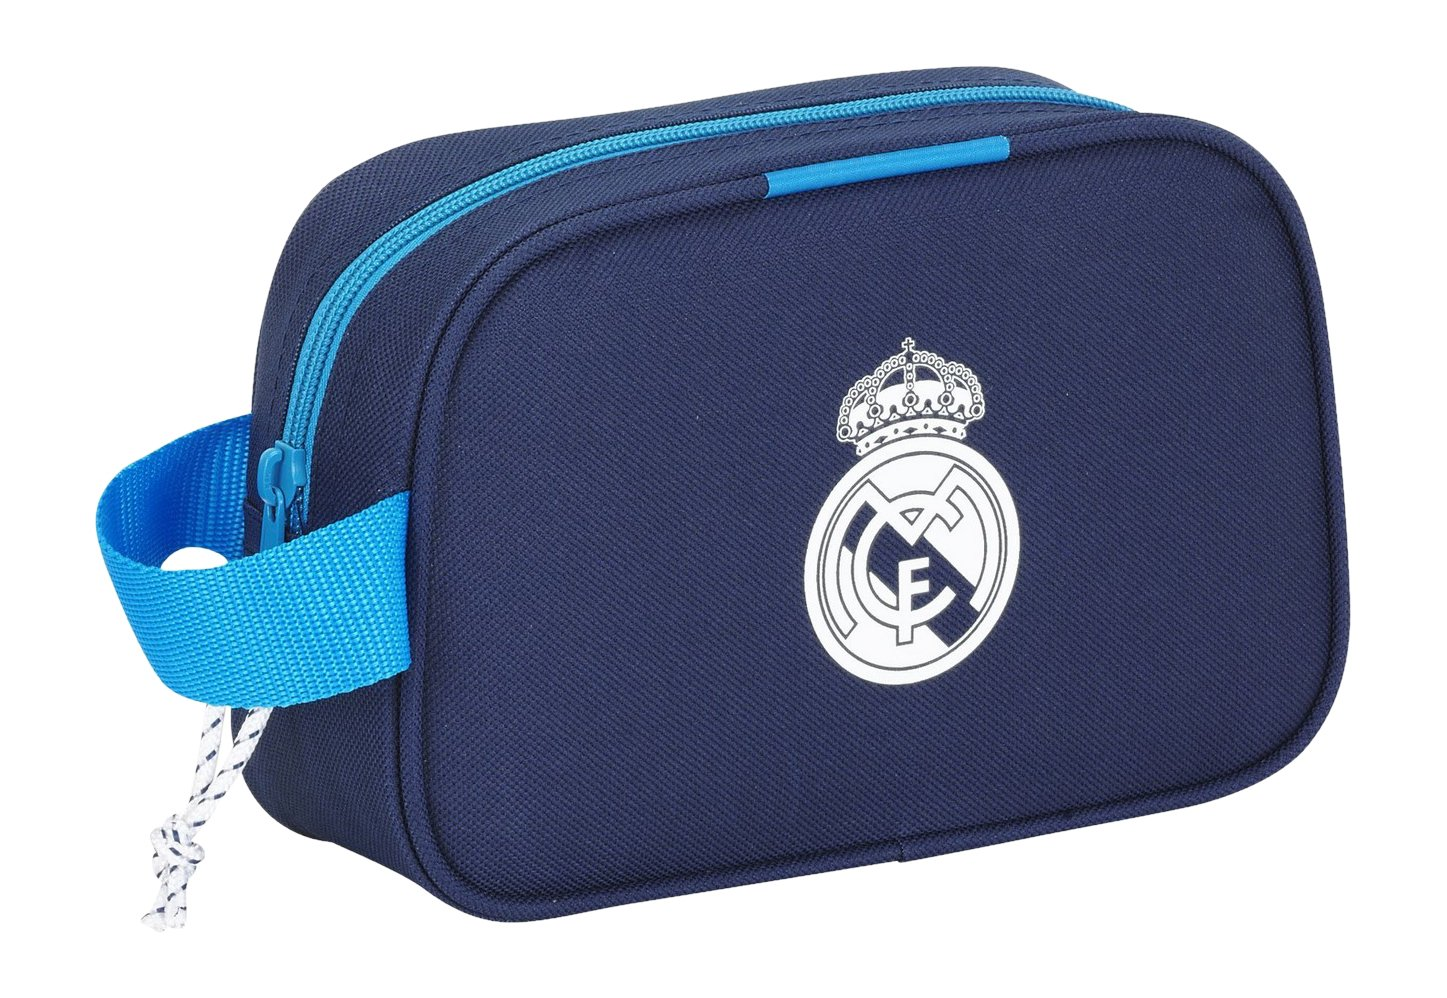 Safta 311278 Real Madrid 3 Neceser, Color Azul Marino